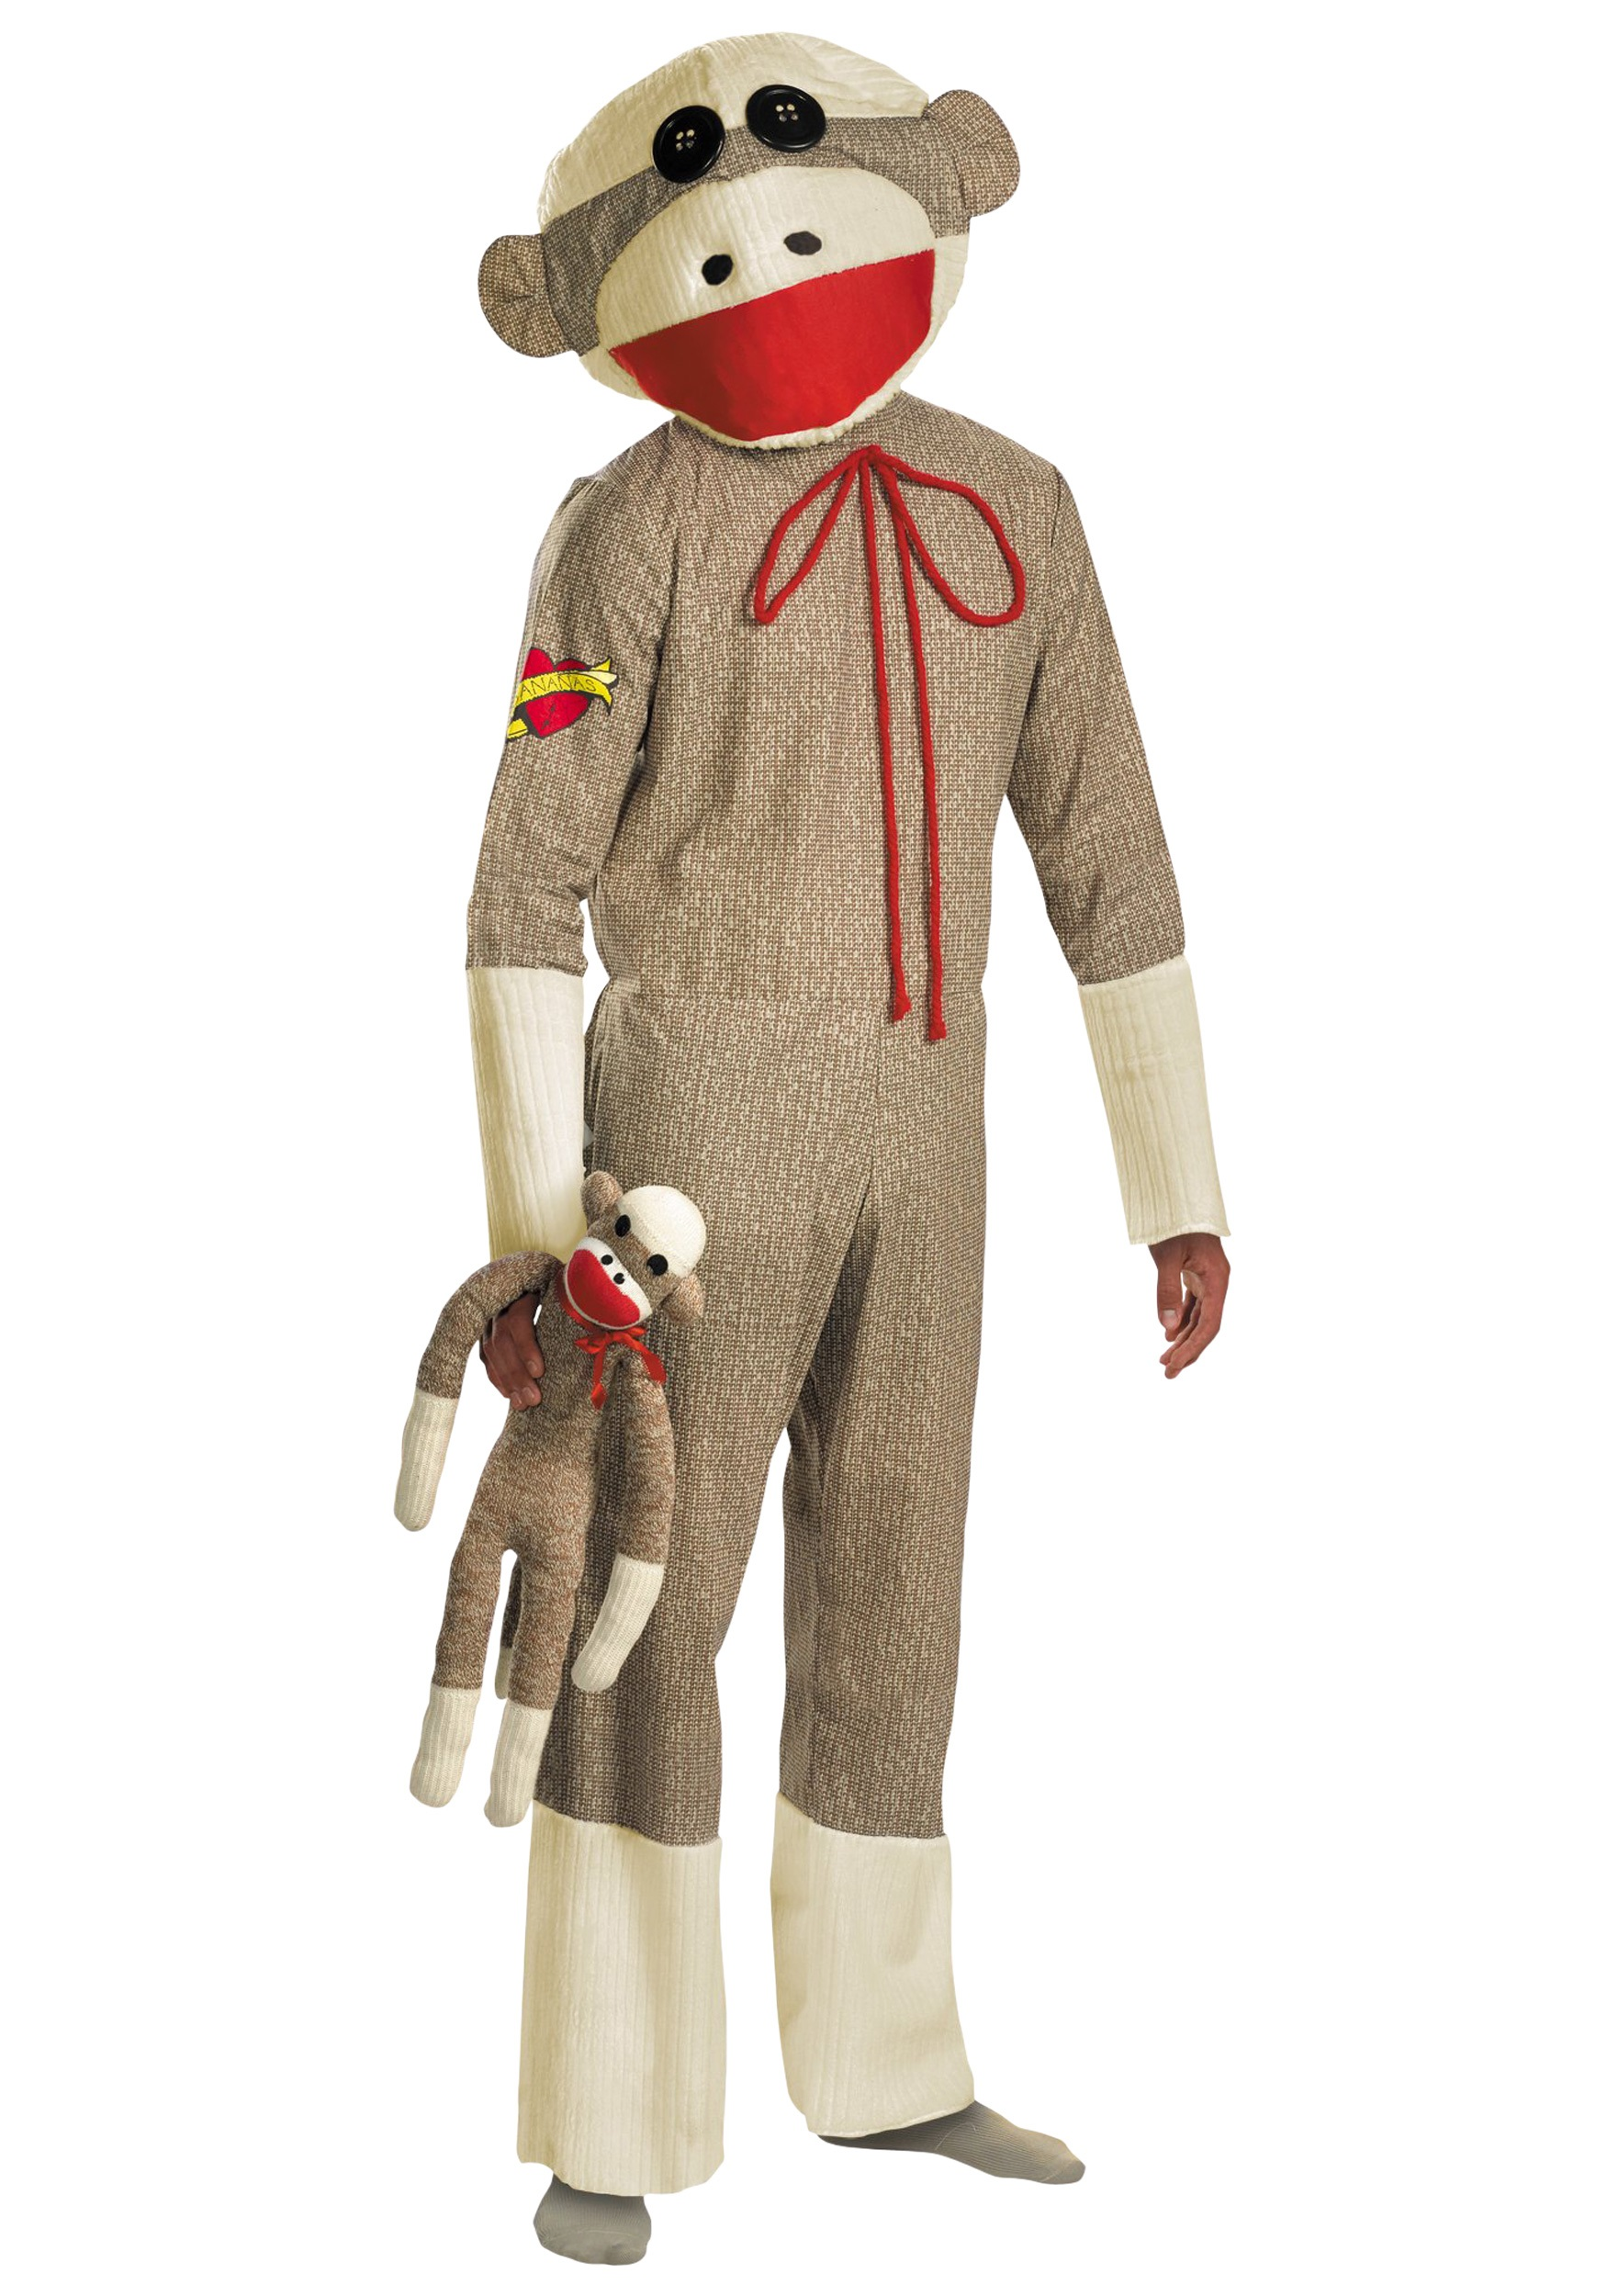 adult sock monkey jpg 1080x810